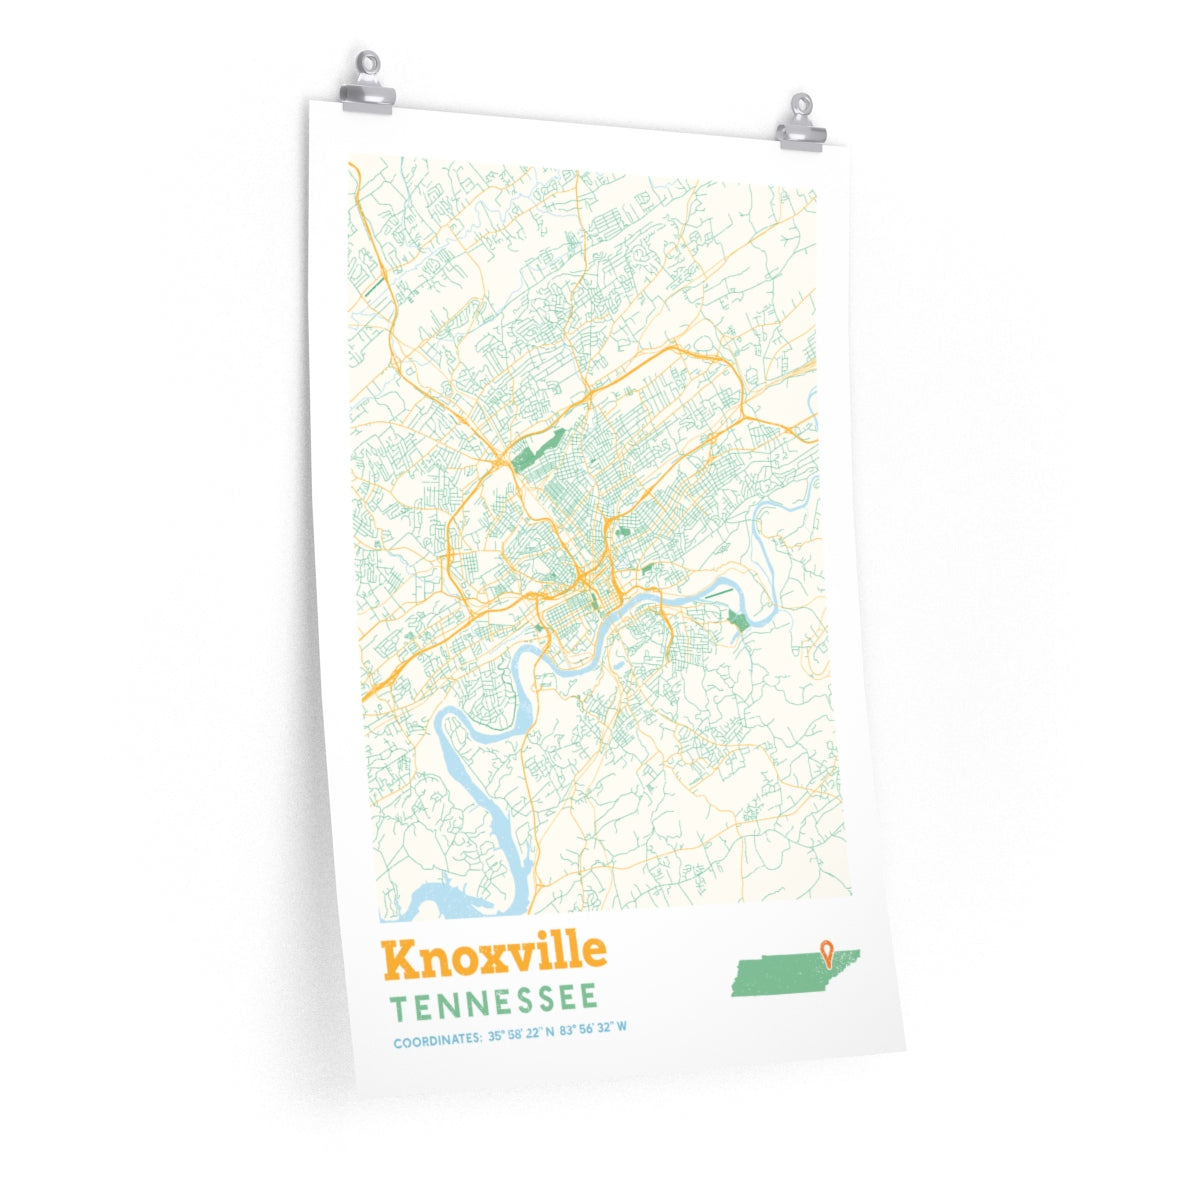 Knoxville Tennessee City Street Map Poster on knoxville iowa city map, knoxville courthouse, knoxville tennessee on map, knoxville railroad map, knoxville old city map, knoxville md map, knoxville sites, knox tn map, knoxville old city historic district, knoxville zip code map, knoxville road map, west knoxville tn map, knoxville suburbs, knoxville area map, knoxville lakes, knoxville ia map, knoxville smokies, johns creek ga zip code map, west town mall knoxville map,